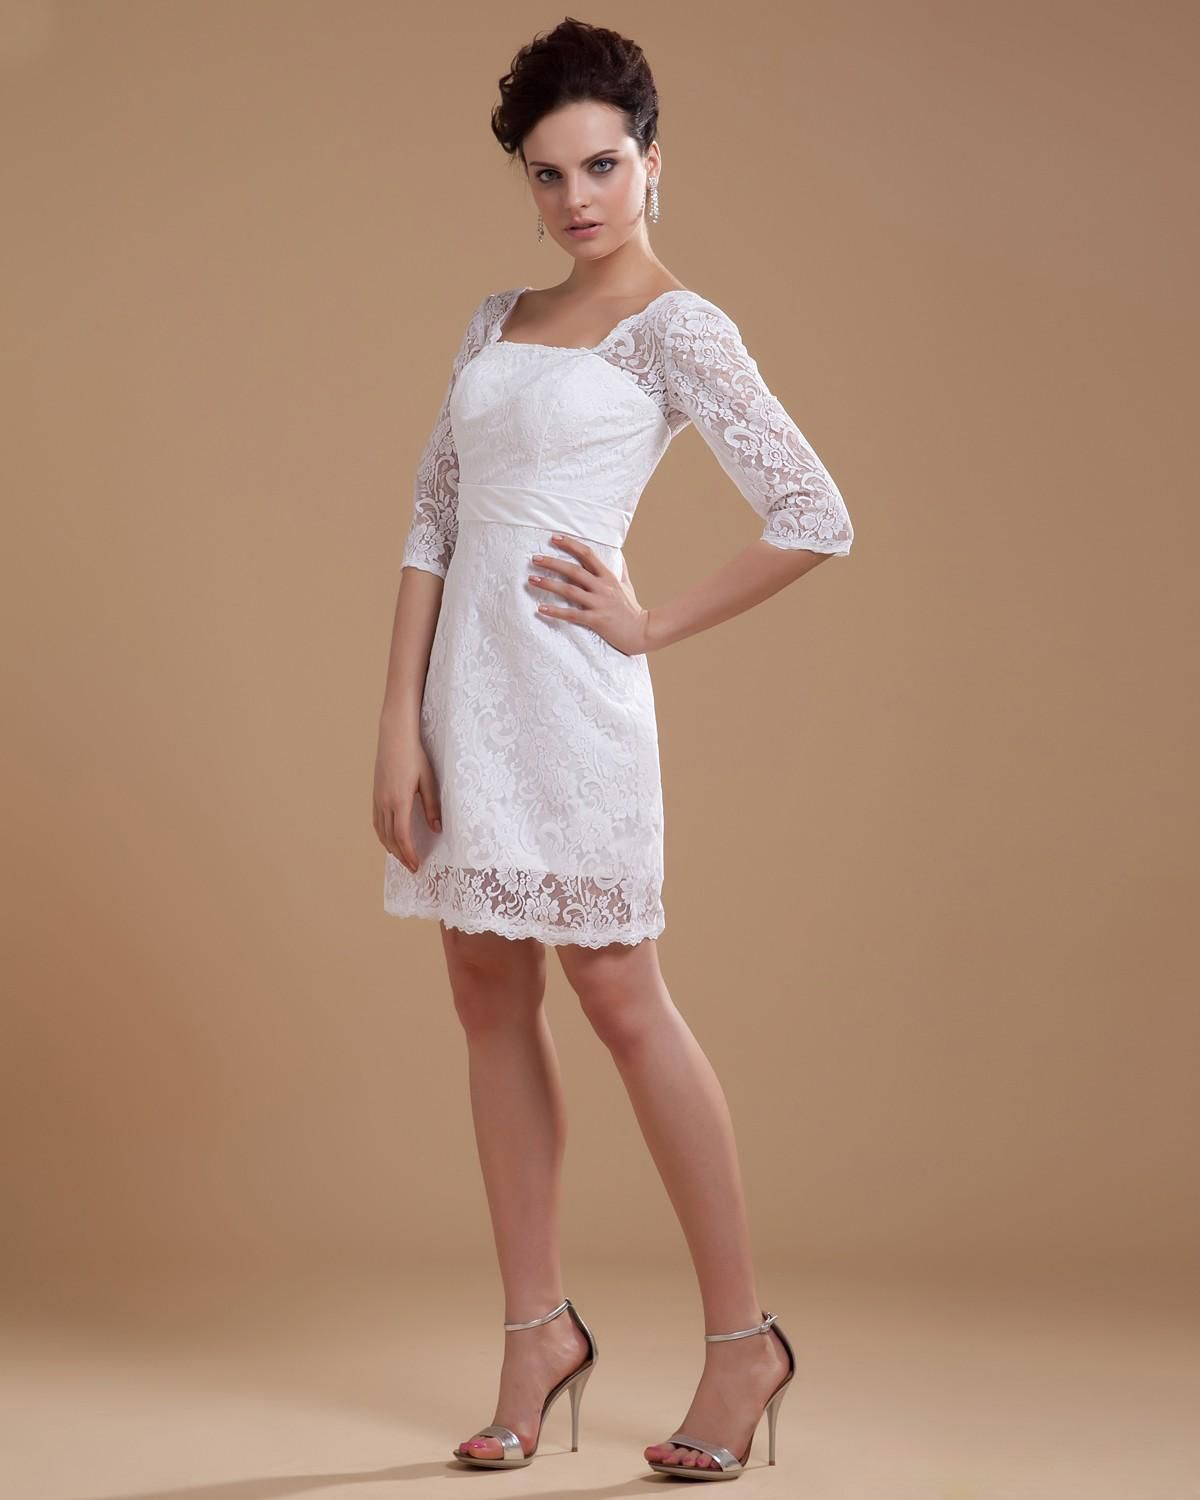 Short lace wedding dress with sleeves  Half Sleeve Lace Square Neck Short Wedding DressStyle Nobg